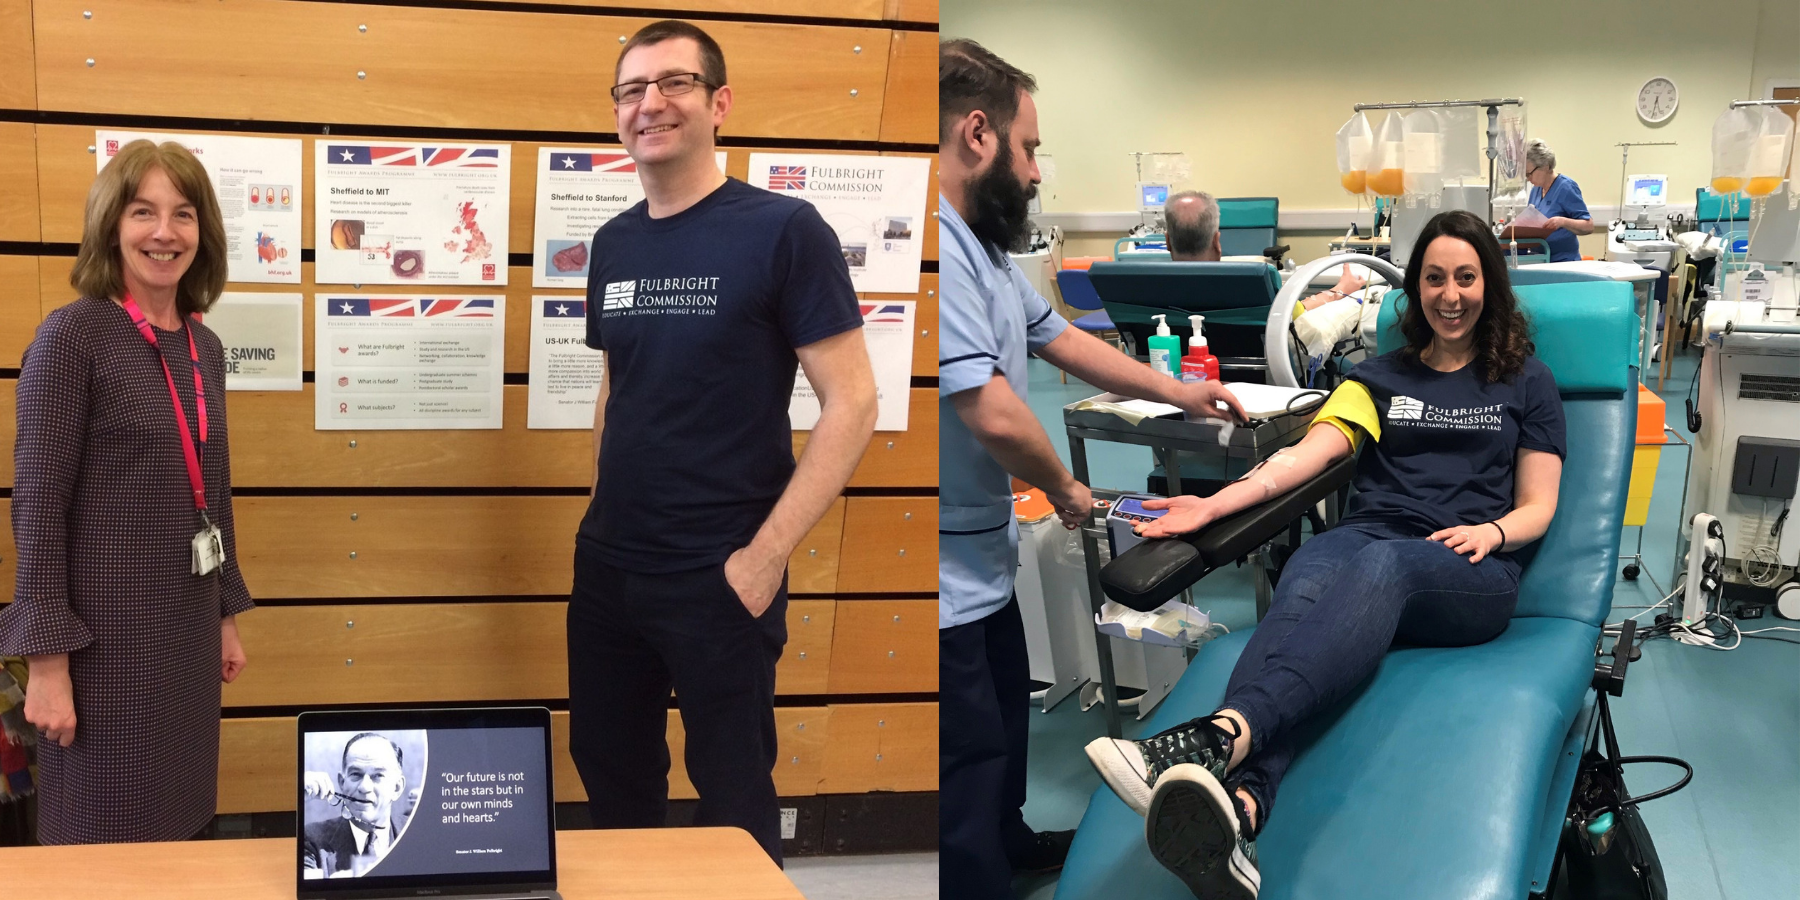 Left: Roger and Sheila at the school science fair. Right: Sarah Rose donating blood Glasgow.